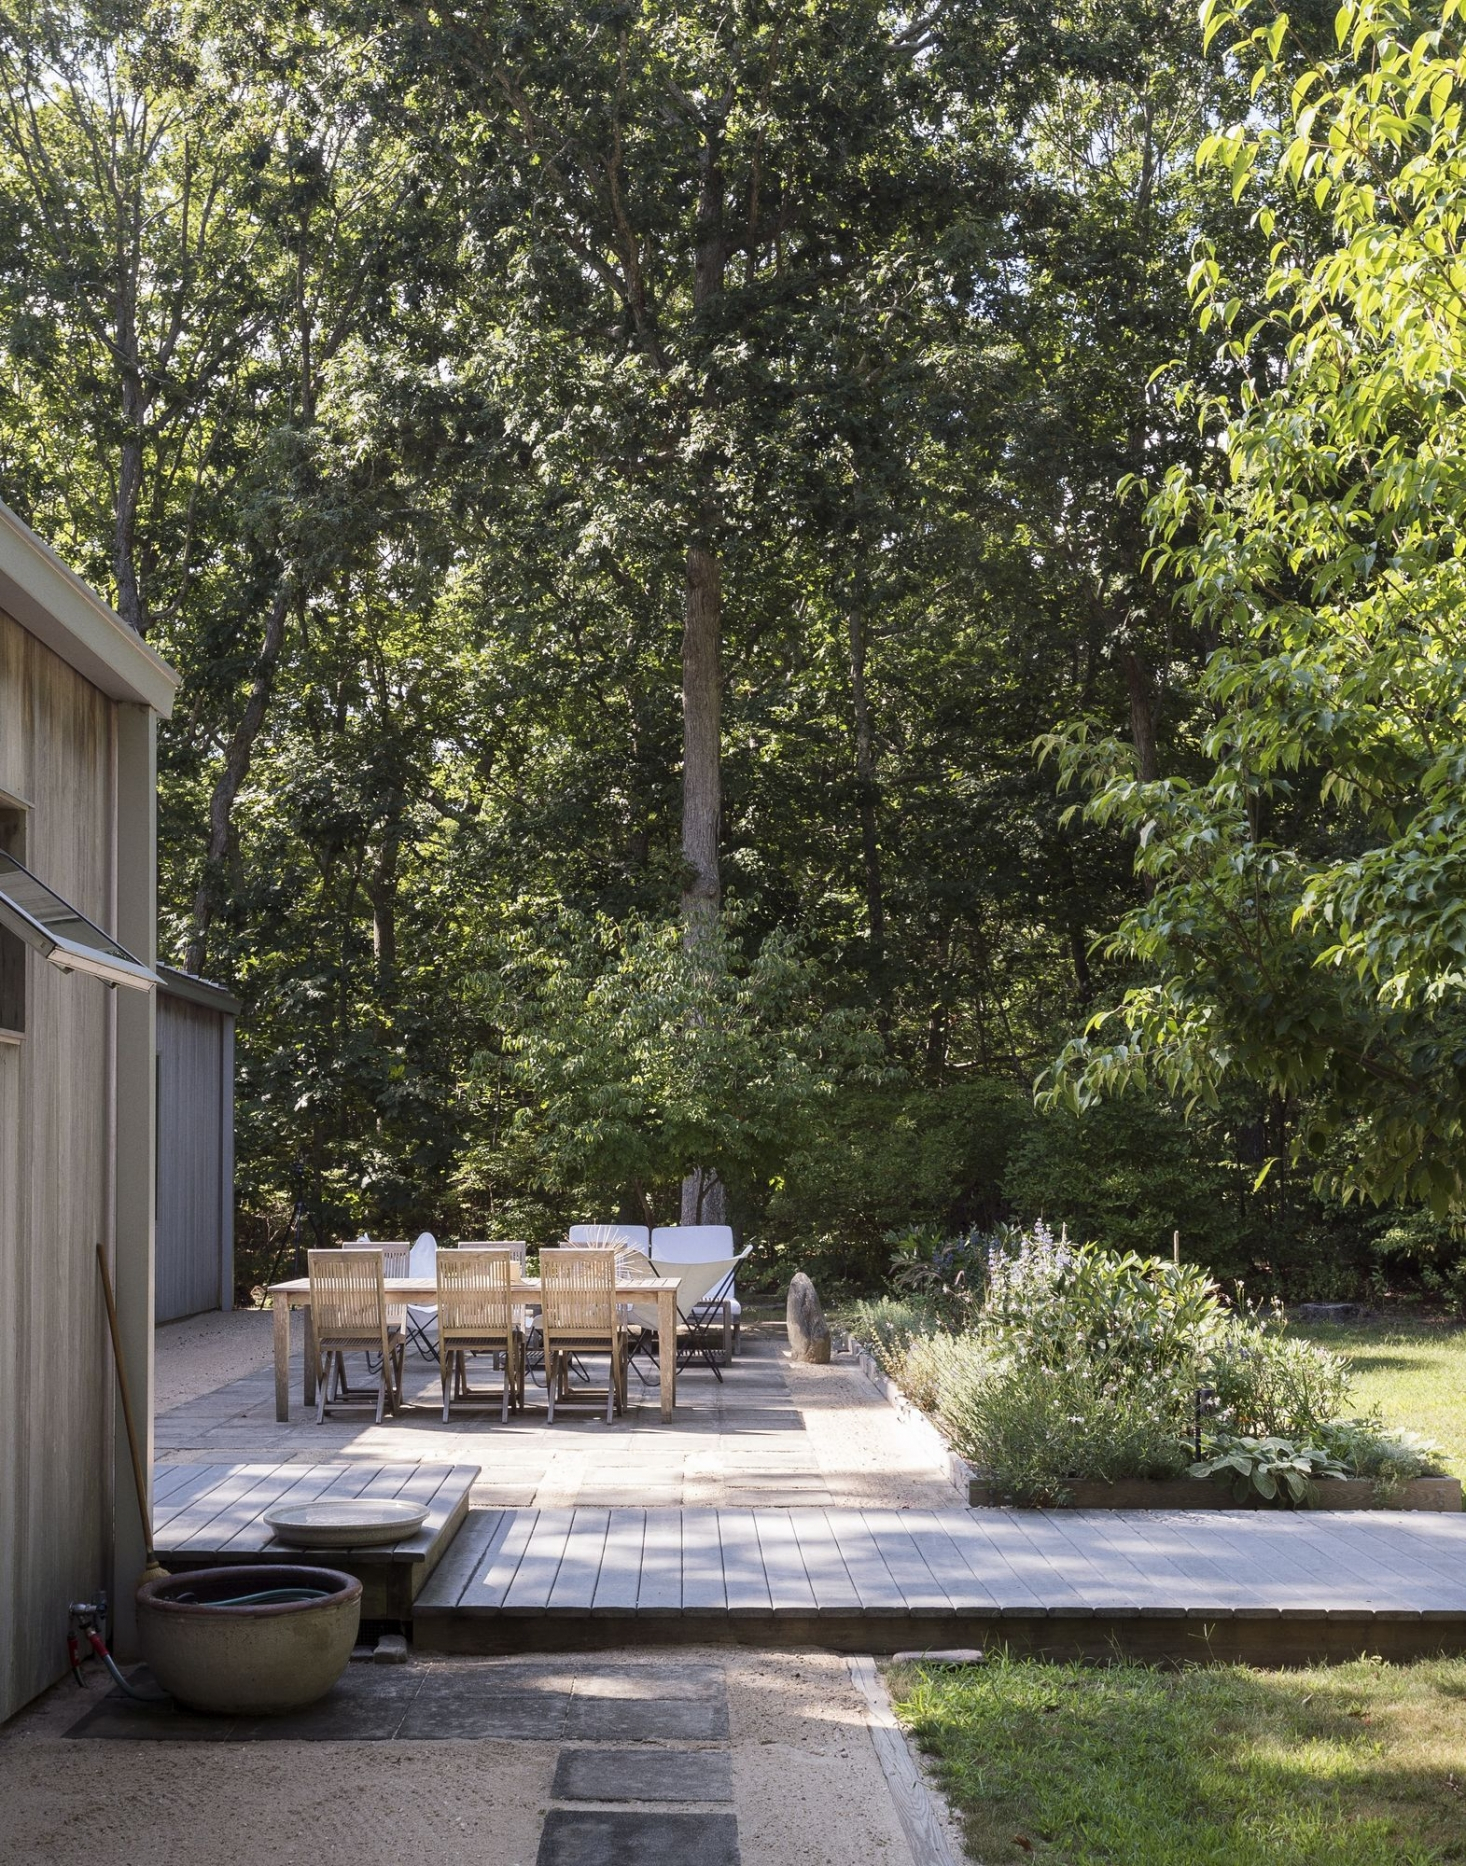 Landscaping Ideas 16 Sustainable Design Tips For A Garden within measurements 1466 X 1866